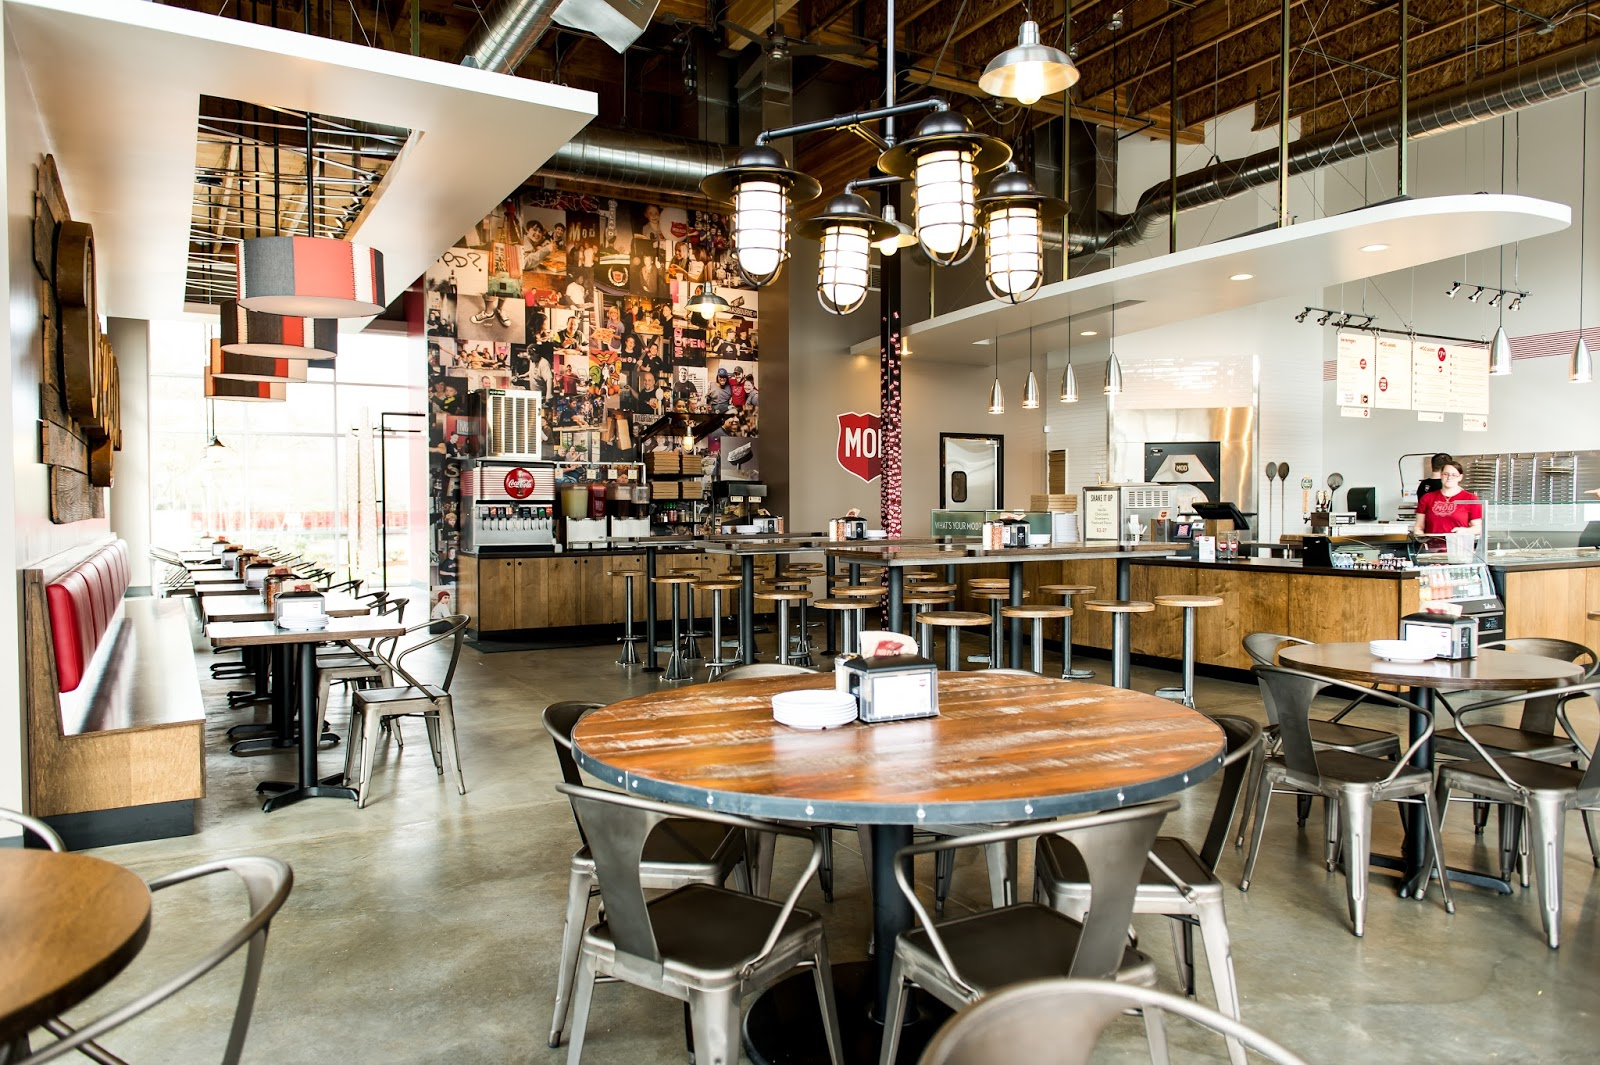 Inland Northwest Business Watch: Mod Pizza coming to Downtown Spokane